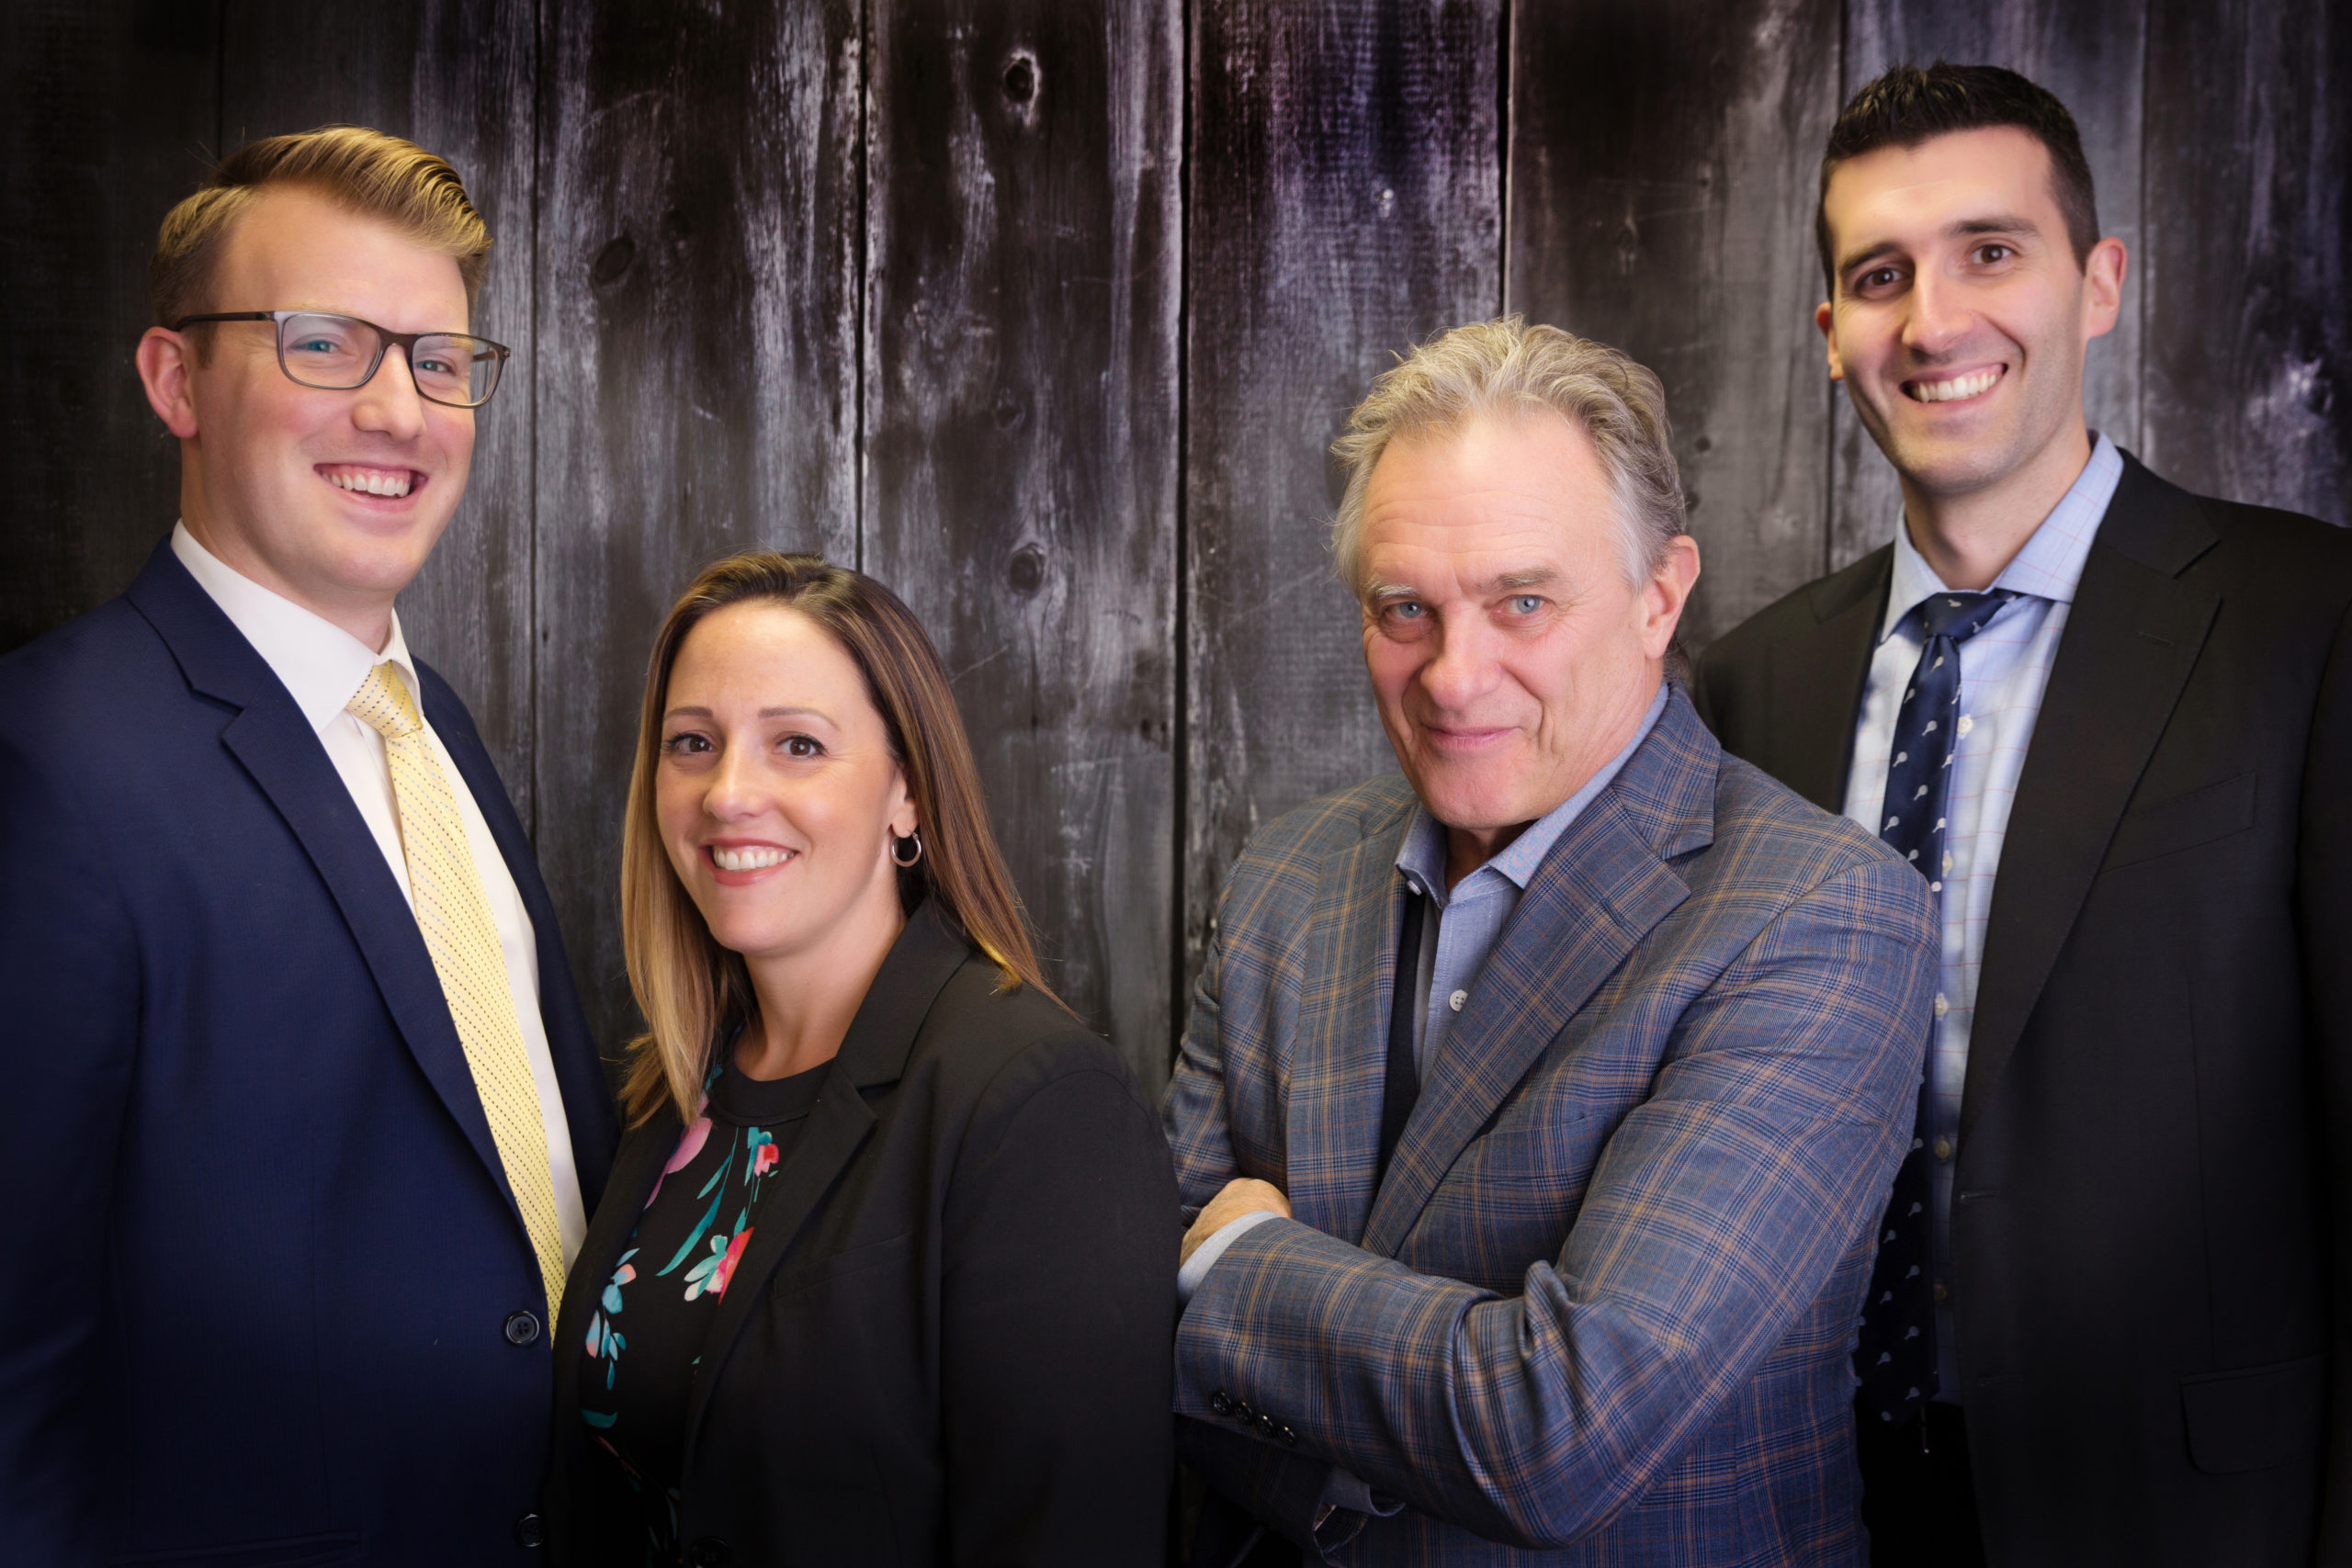 Family Law Lawyers of South Coast Law Group